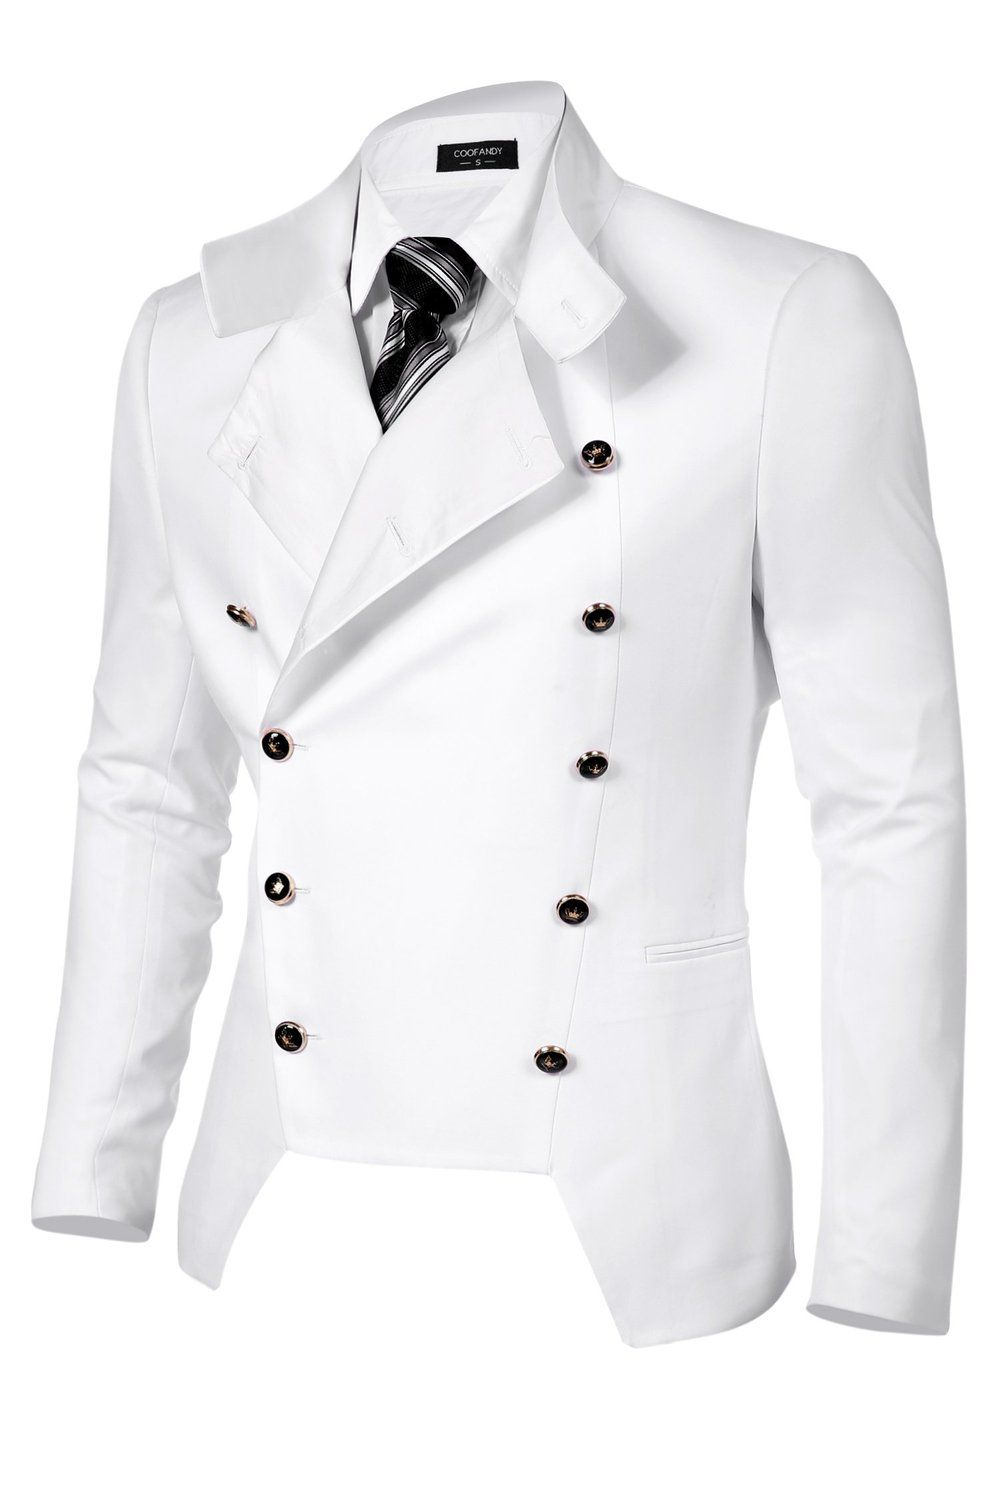 5e747388e4f Coofandy Men s Casual Double-breasted Jacket Slim Fit Blazer at Amazon  Men s Clothing store